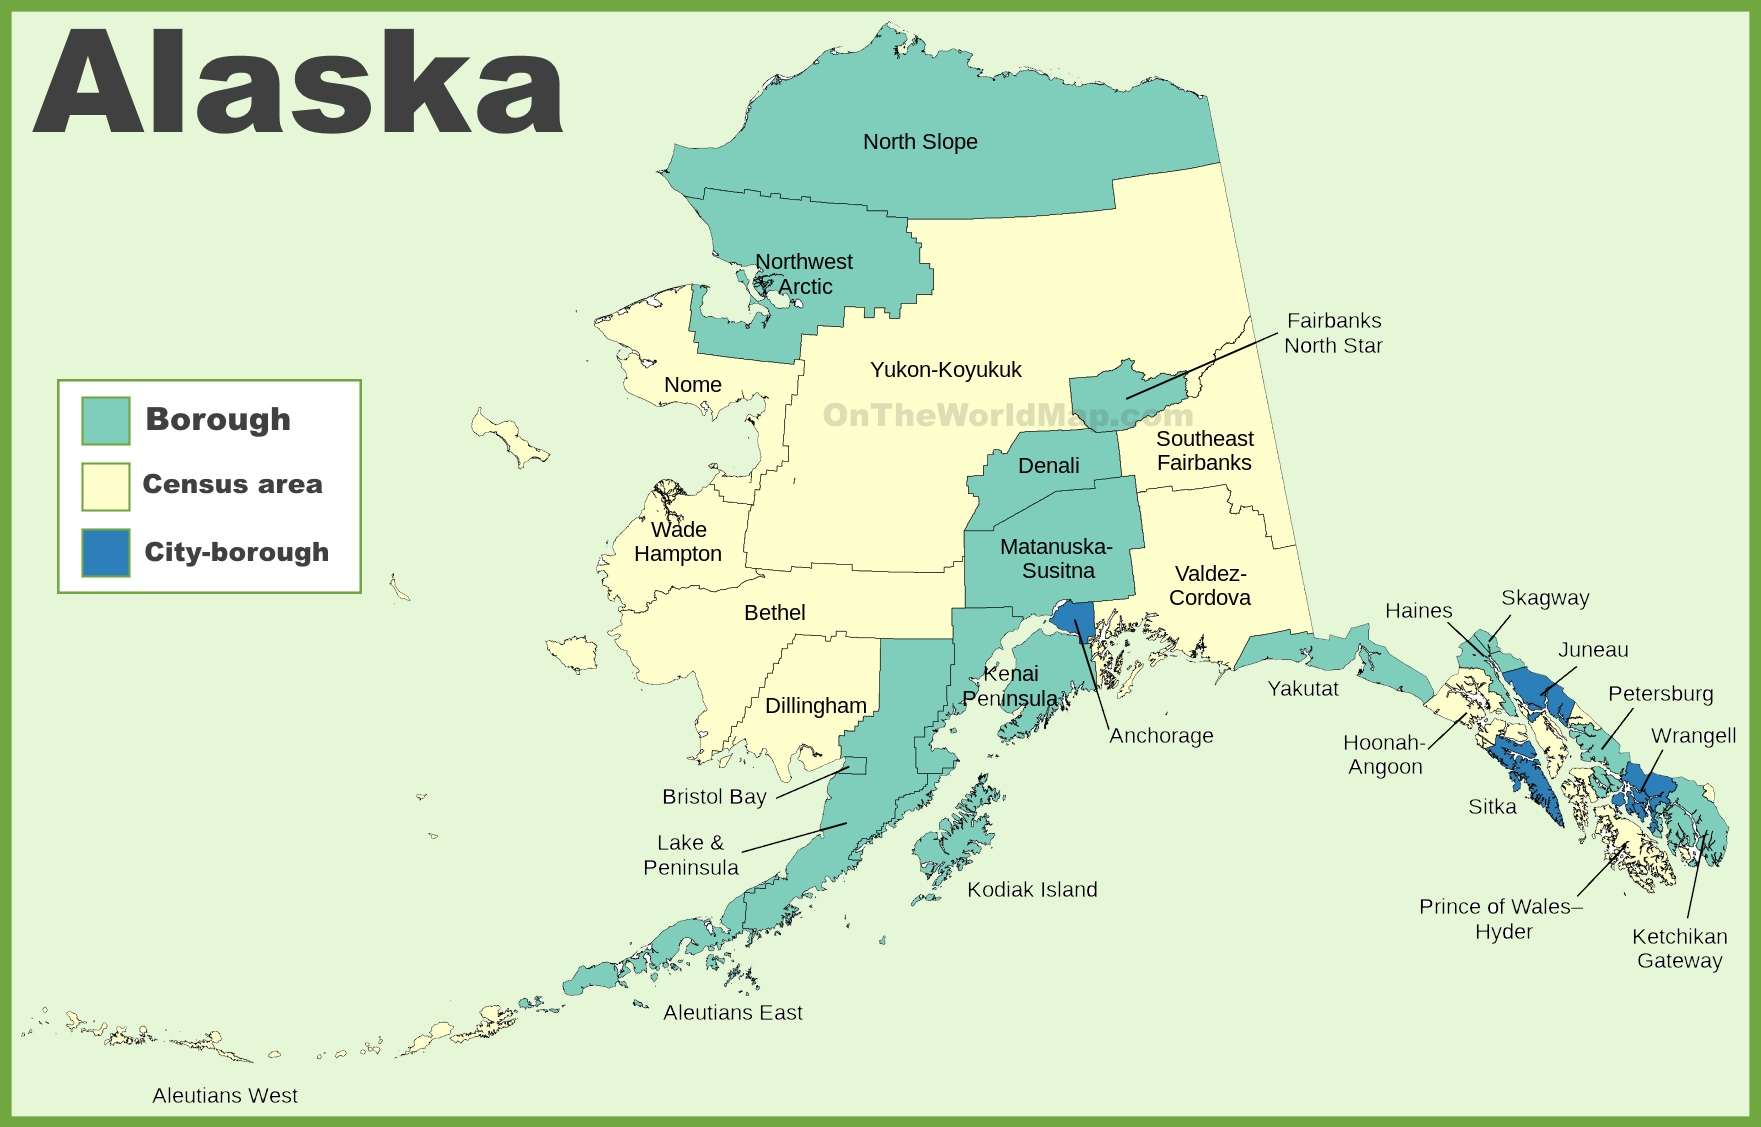 Alaska State Maps USA Maps Of Alaska AK - Alaska usa map